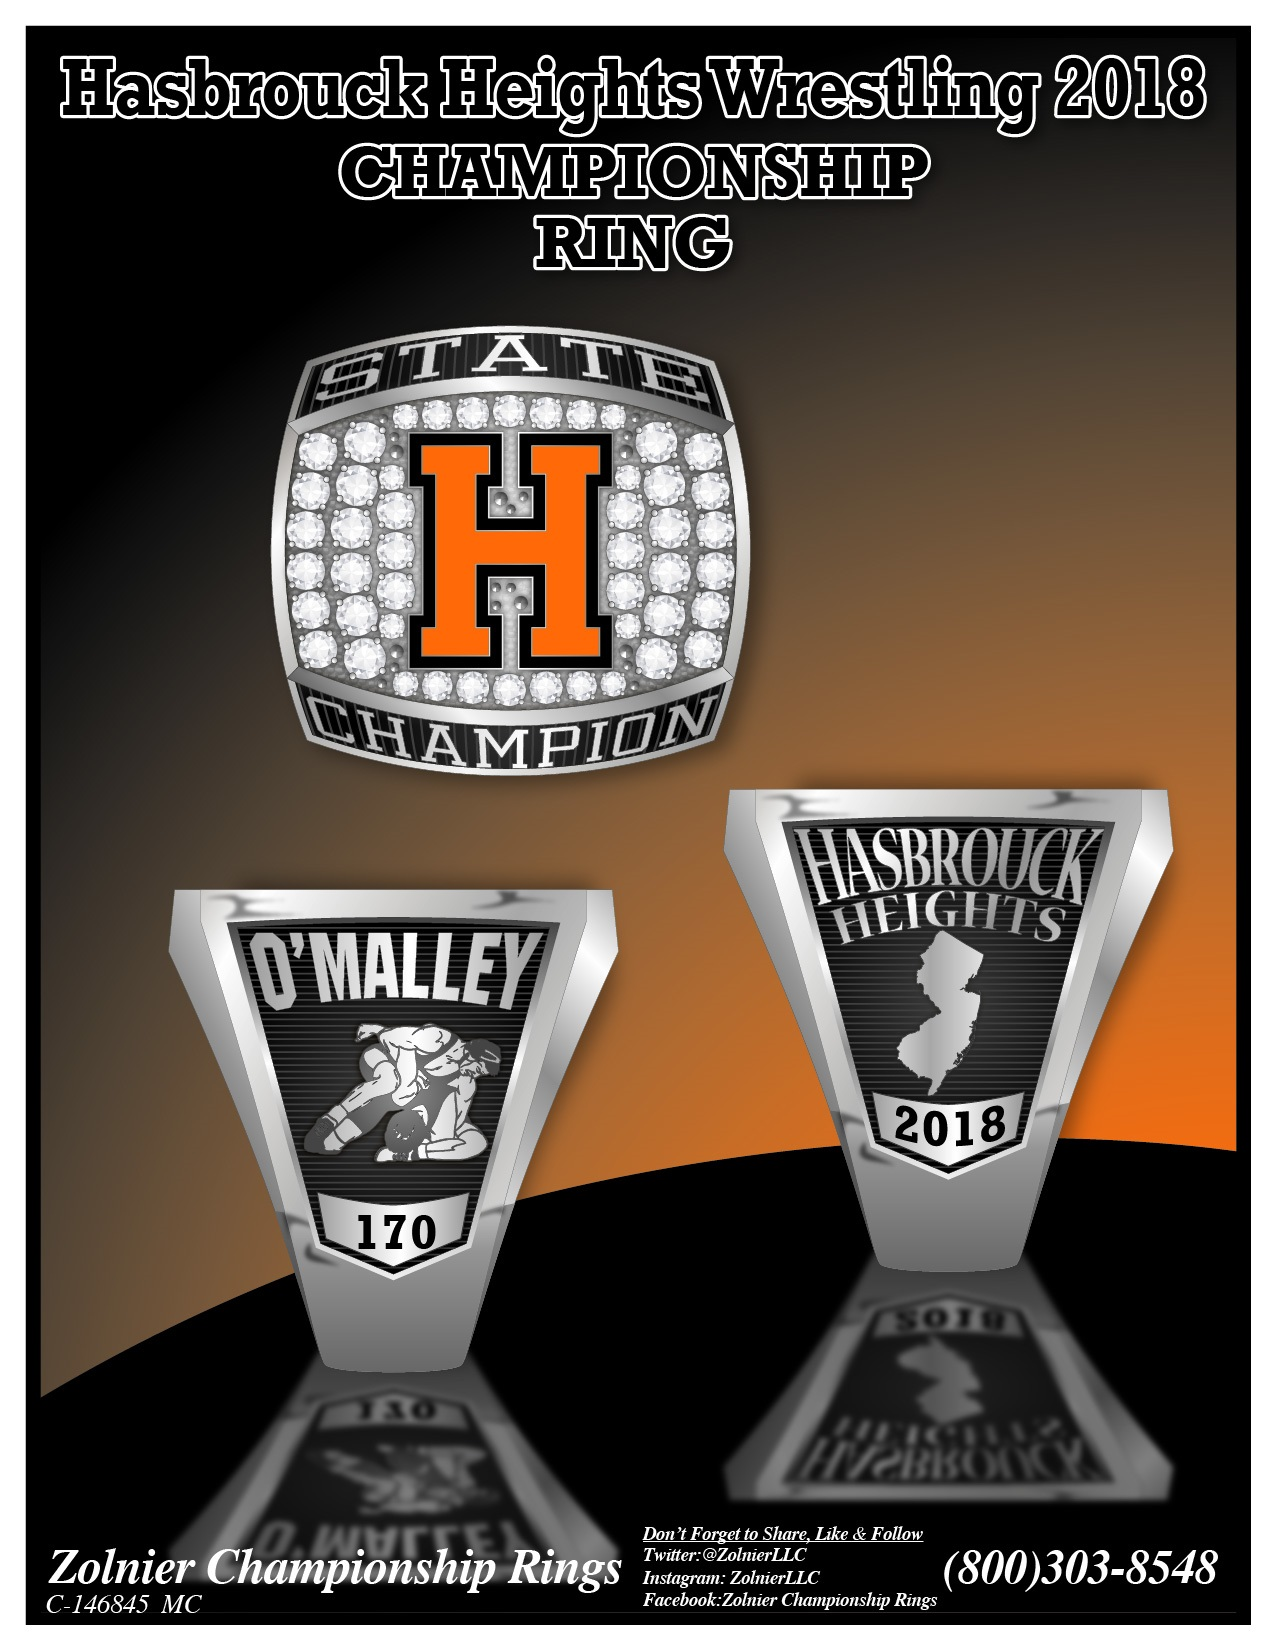 C-146845 Hasbrouck Heights Wrestling Champ Ring